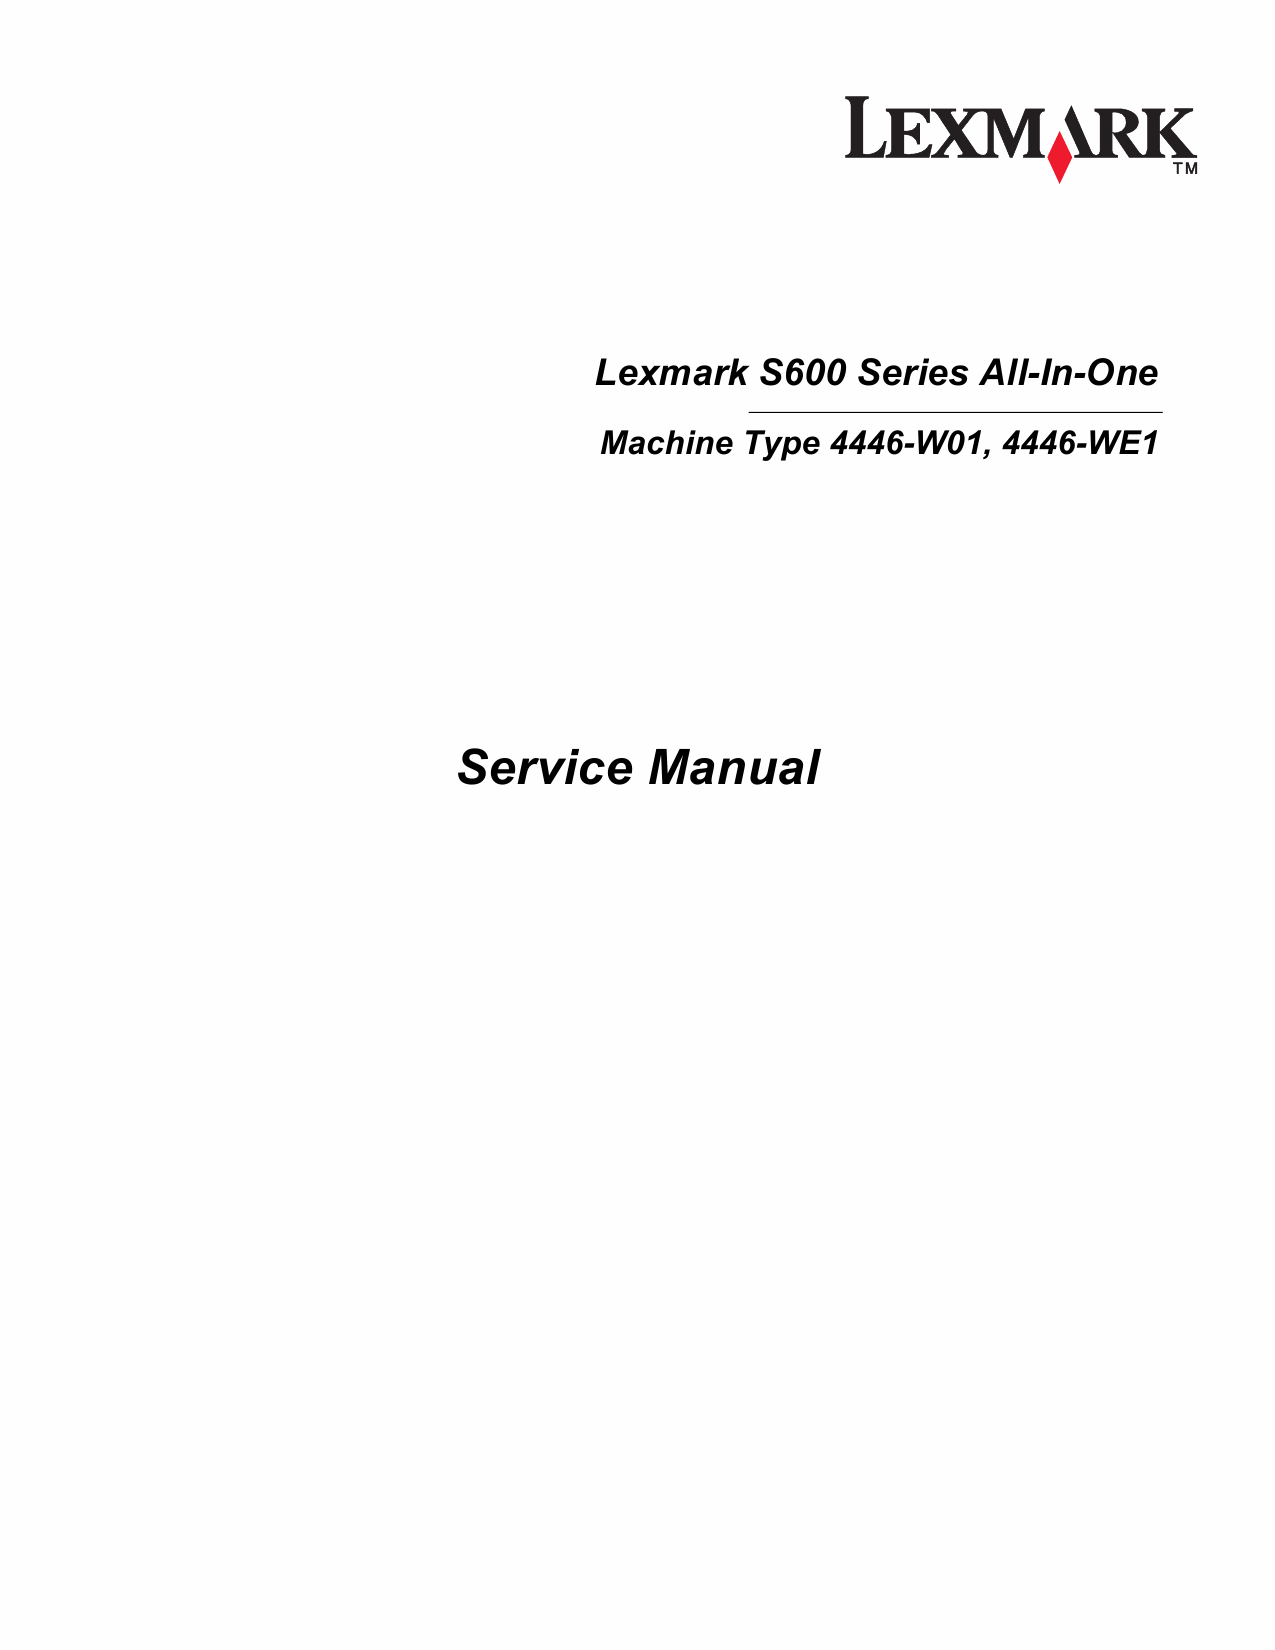 Lexmark All-In-One S600 4446 Service Manual-1